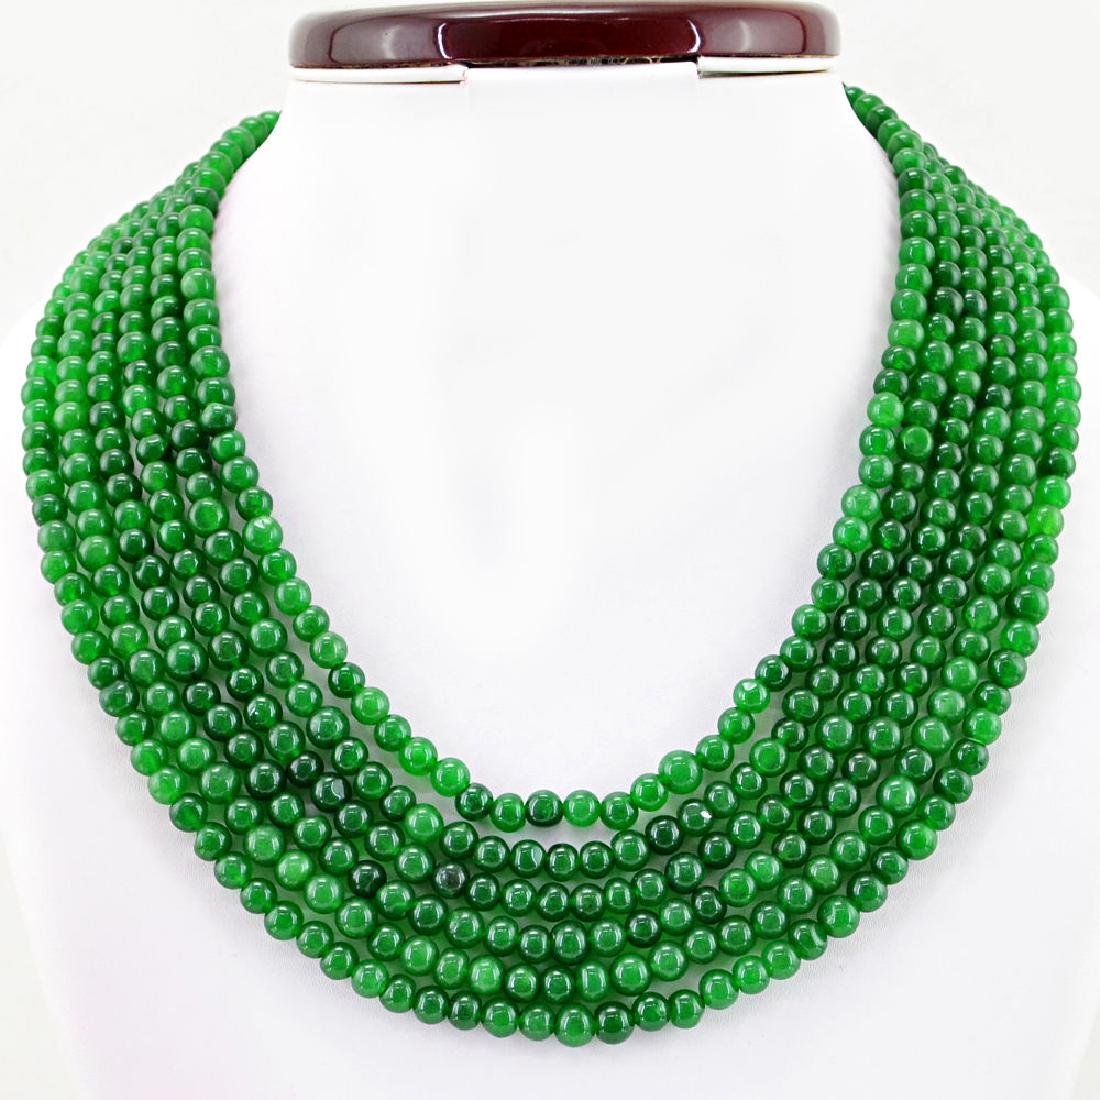 EARTH MINED 6 STRAND ROUND SHAPE RICH GREEN EMERALD - 2